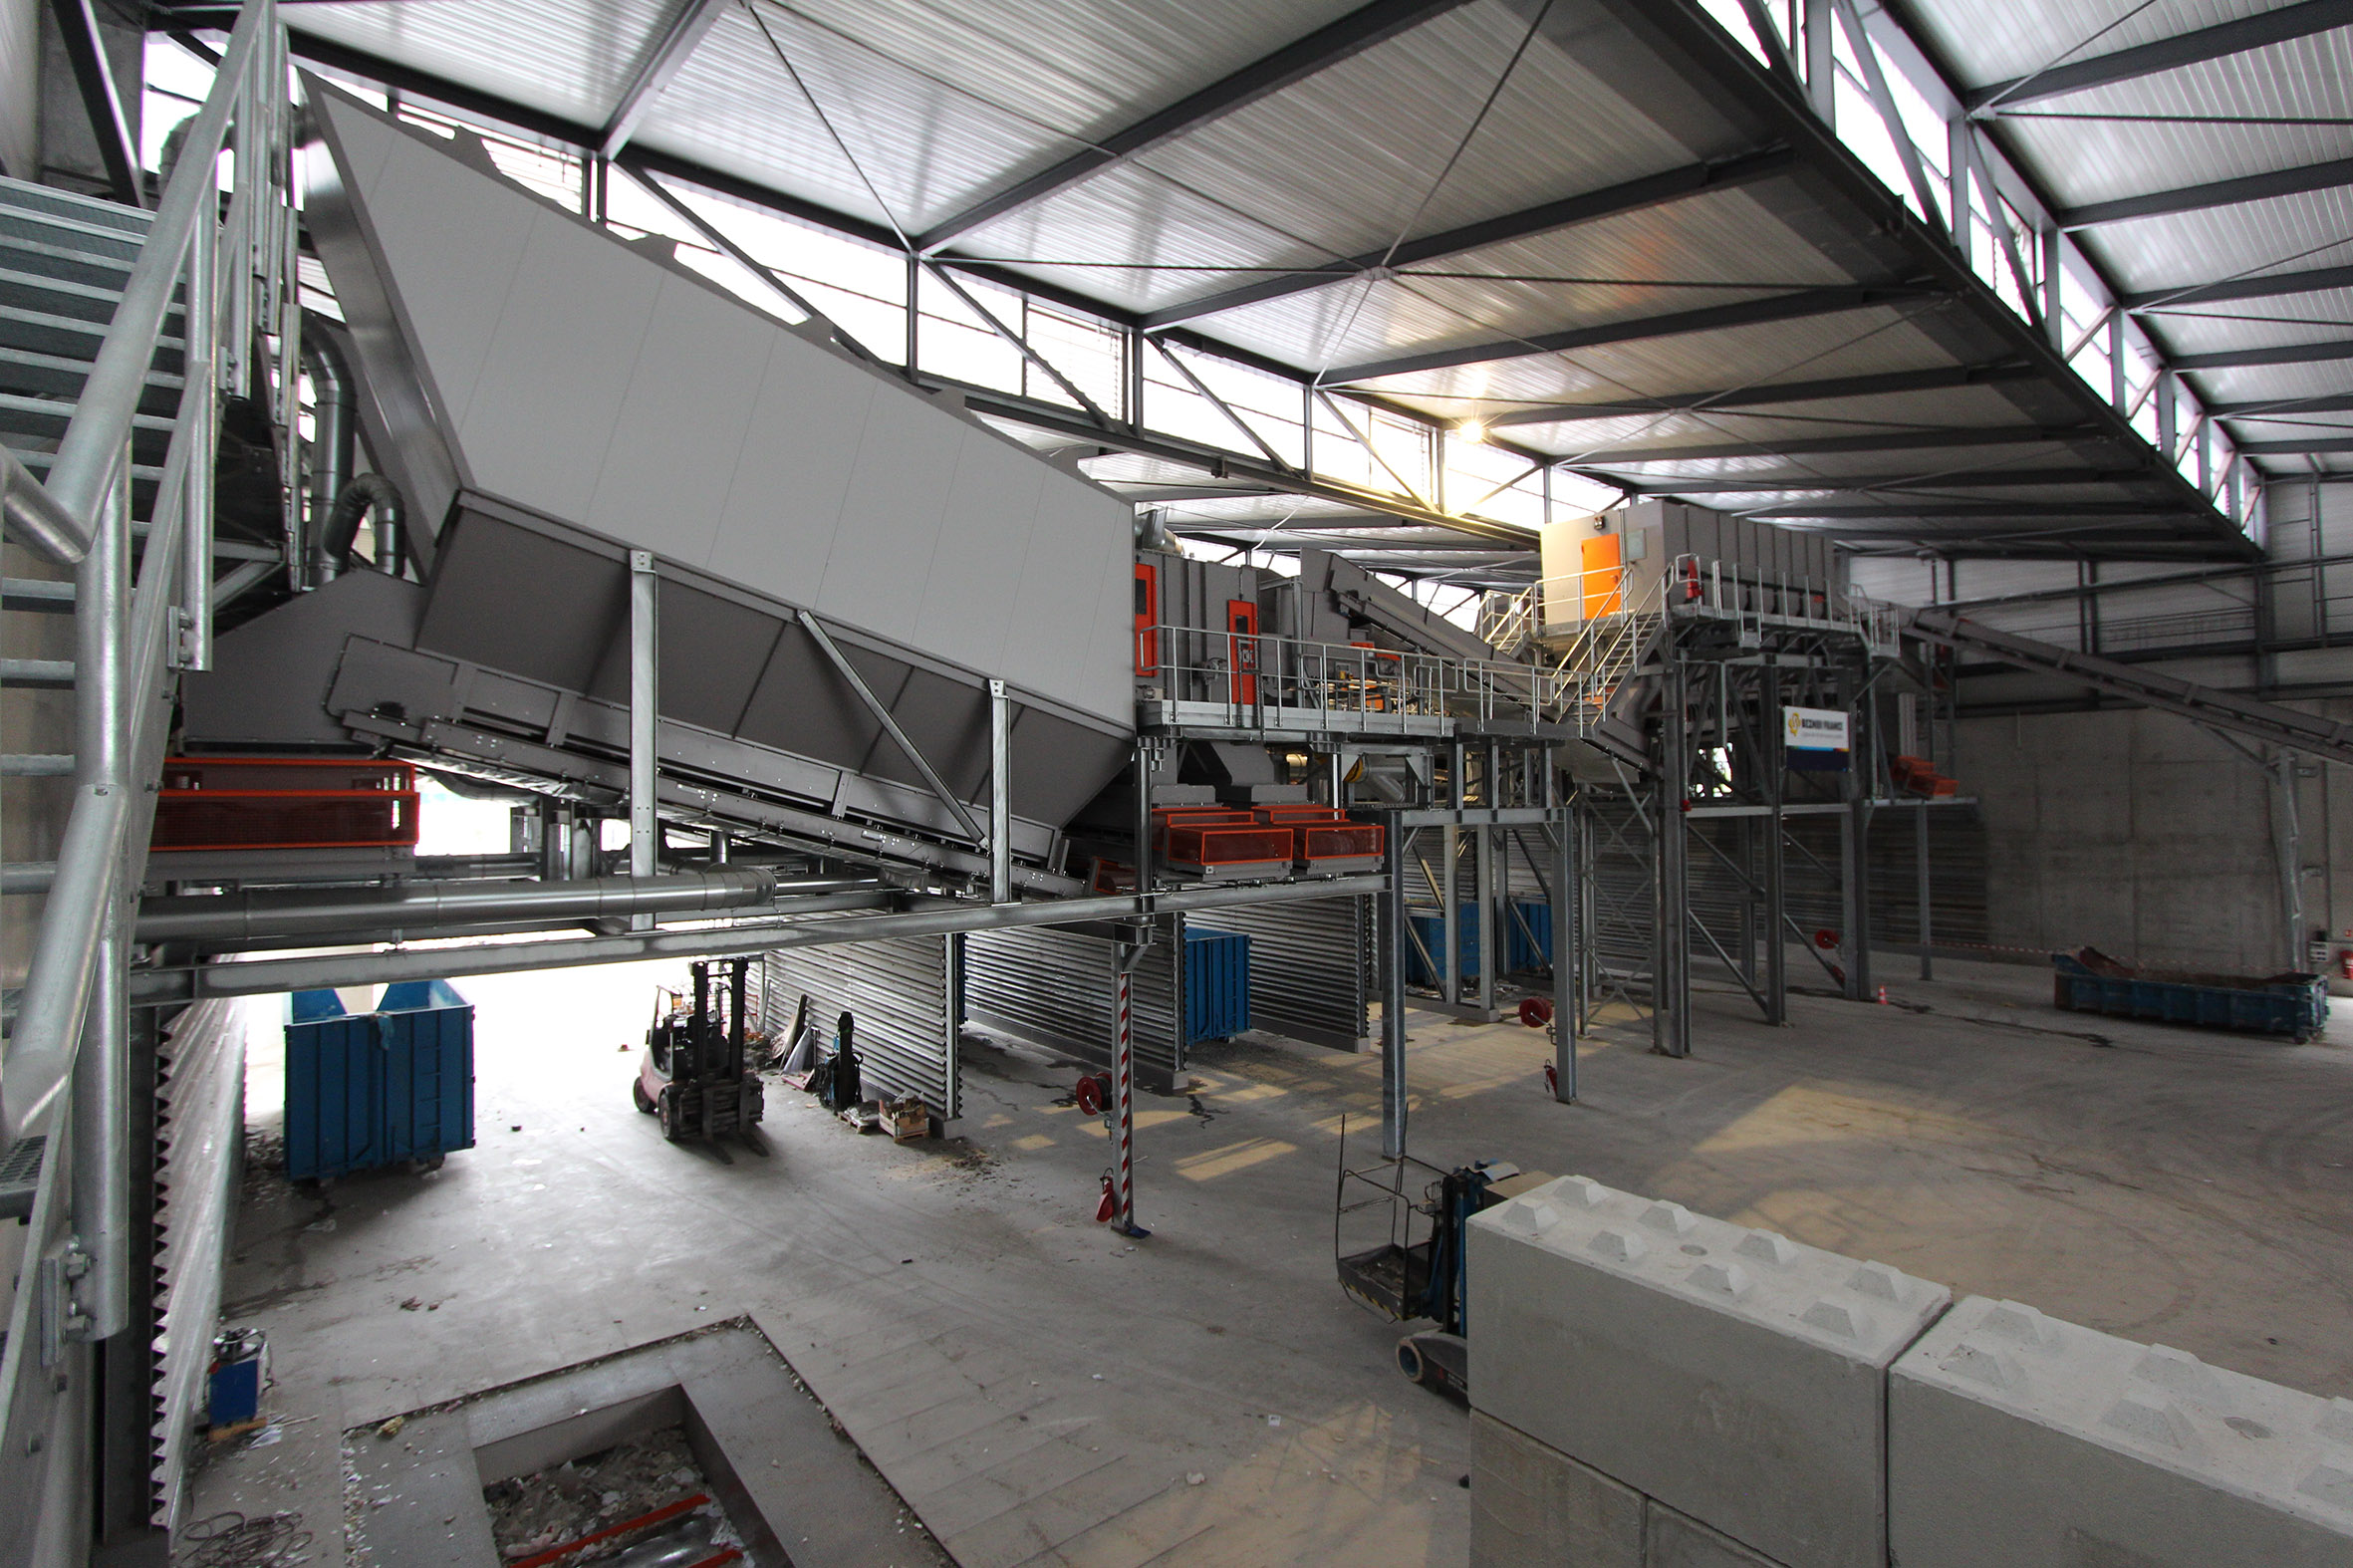 Wind sifter Recycling plant for industrial and demolition waste